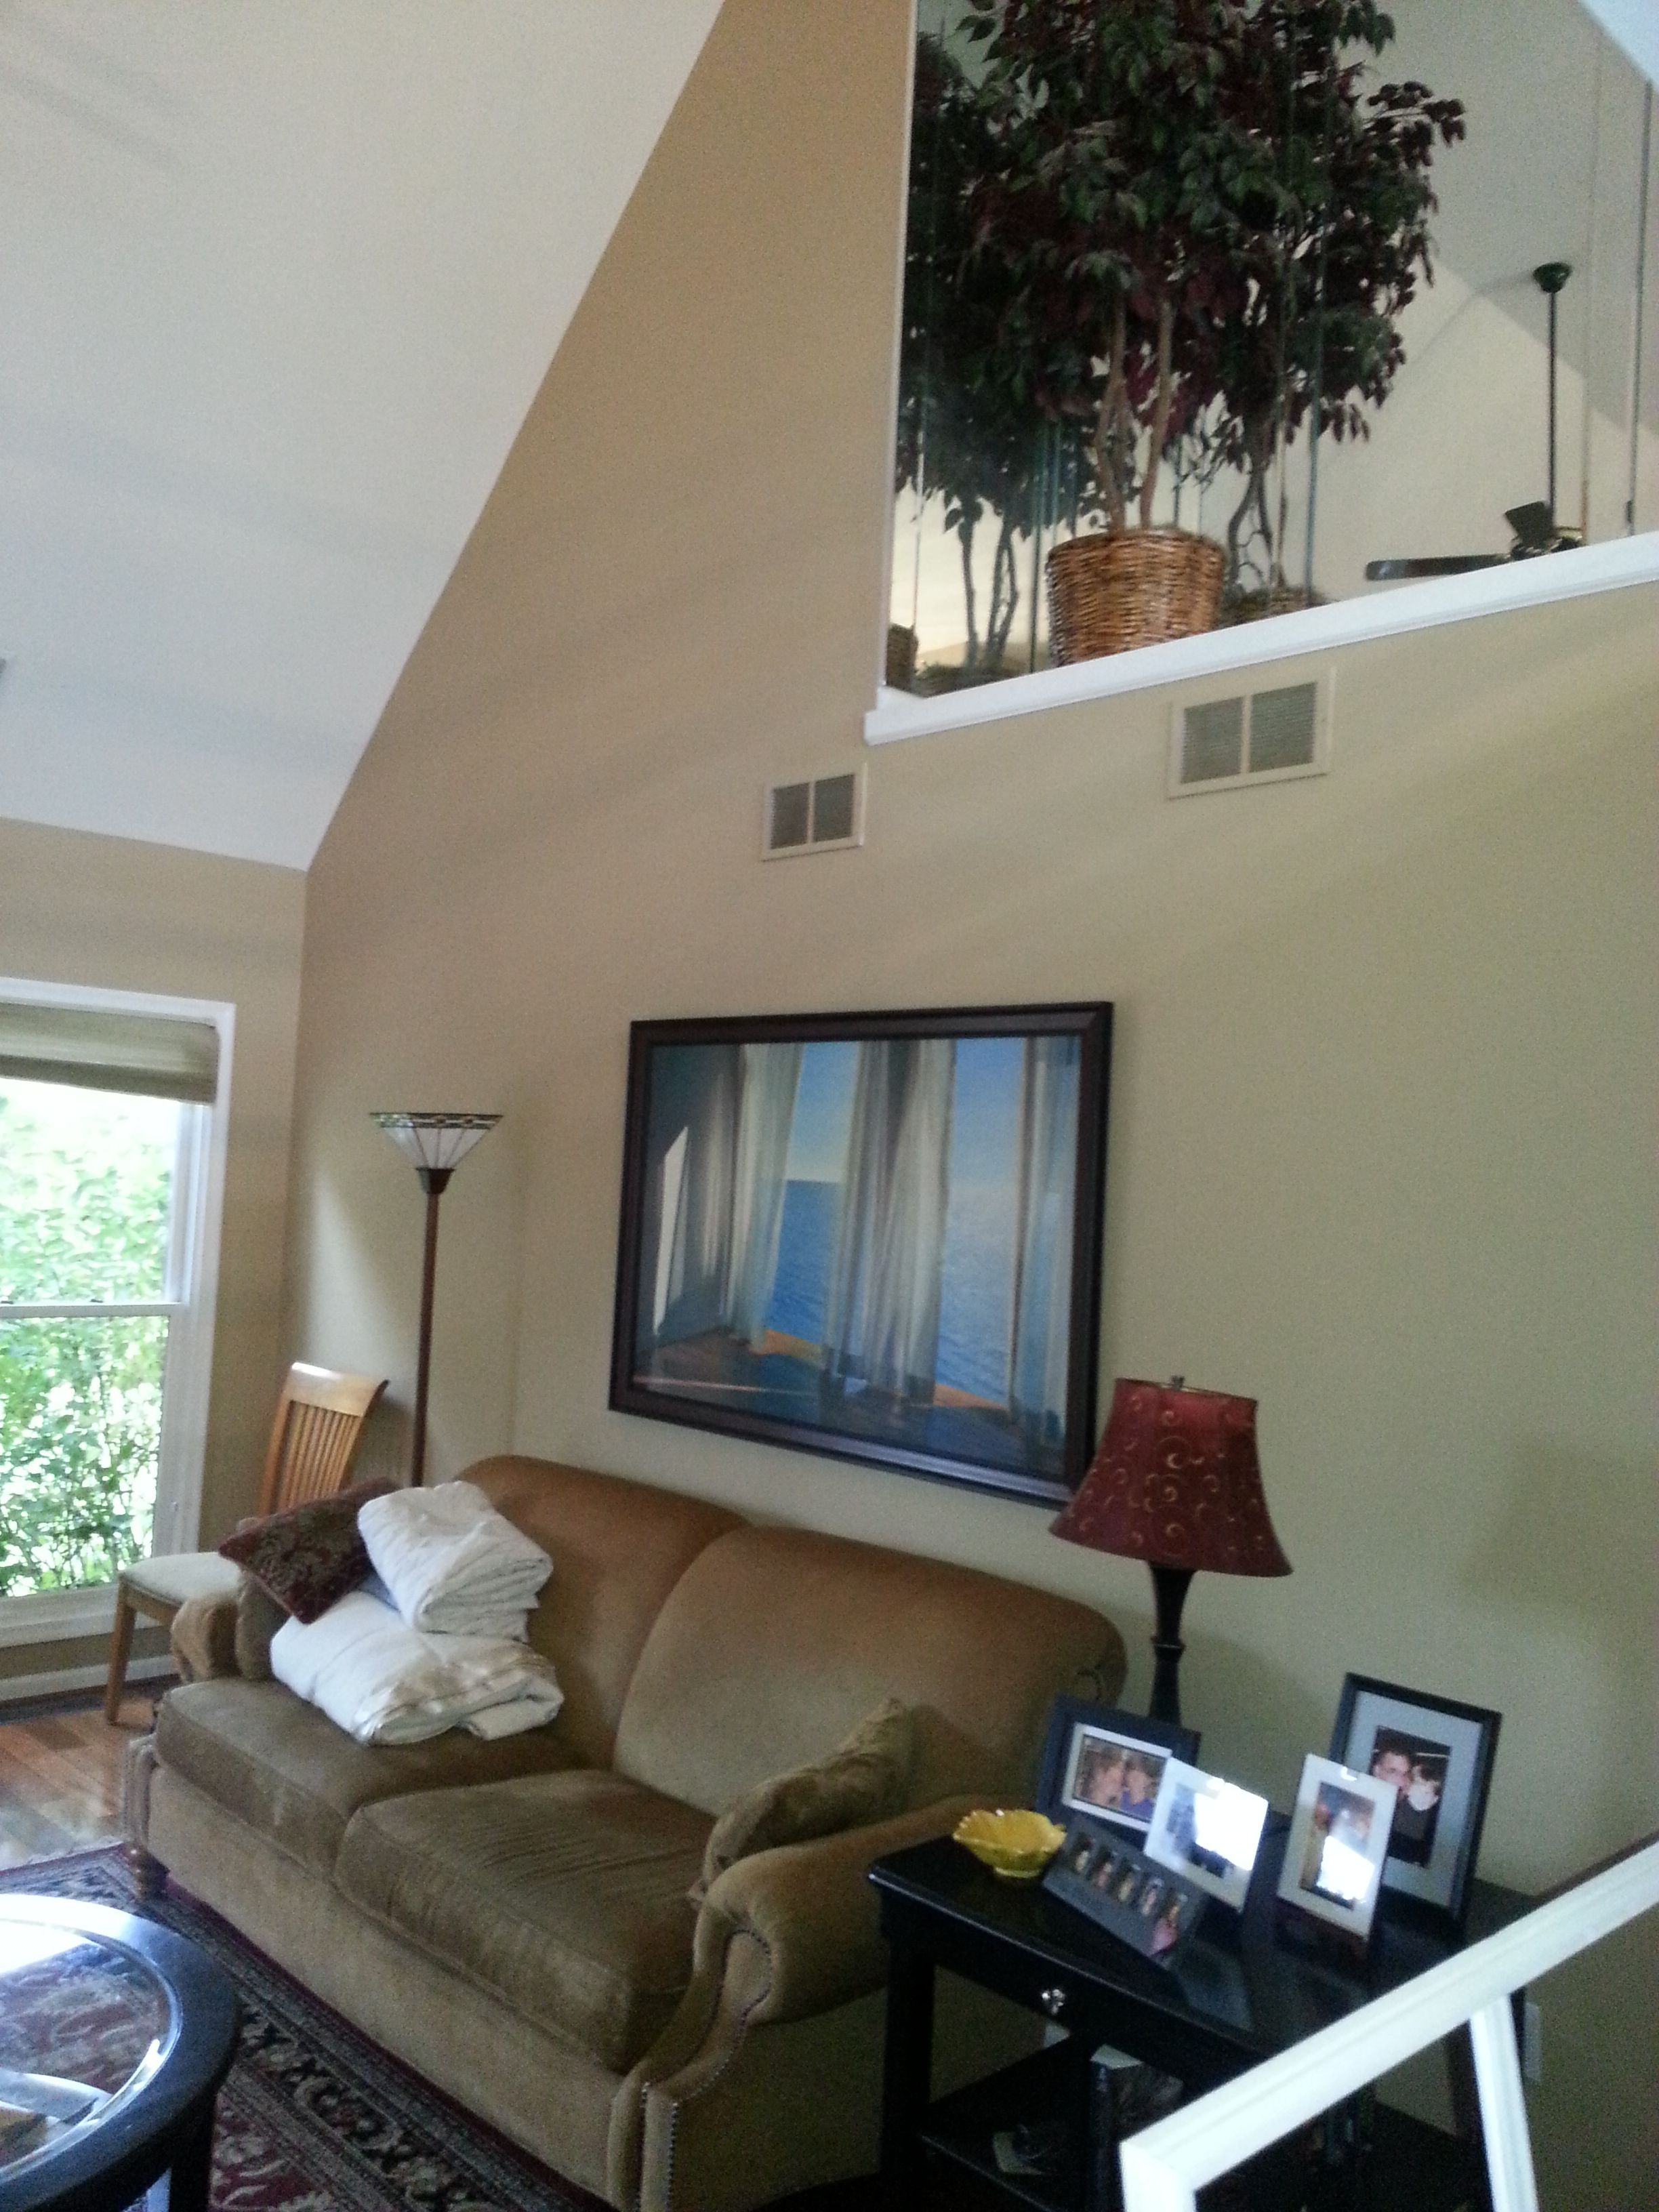 #Painting for a homeowner earlier this year. John (610) 428-2751